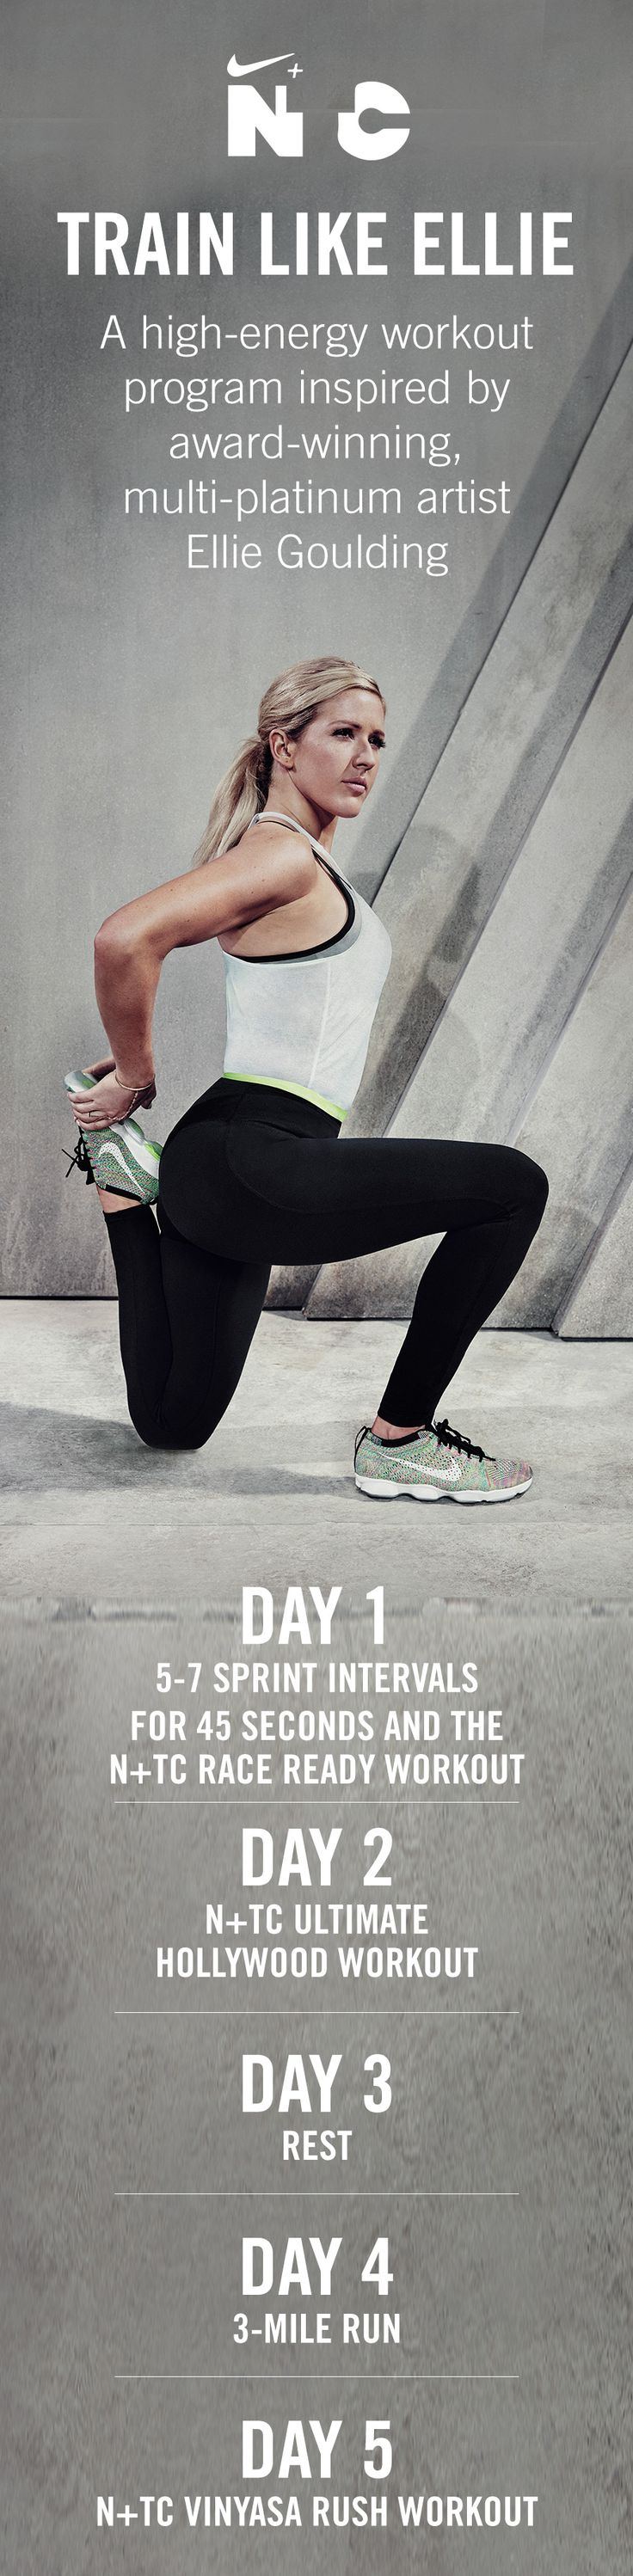 Kick-start your week with the Train Like Ellie Goulding 5-day challenge. Day one starts now. Head to the Nike+ Training Club app to get started.